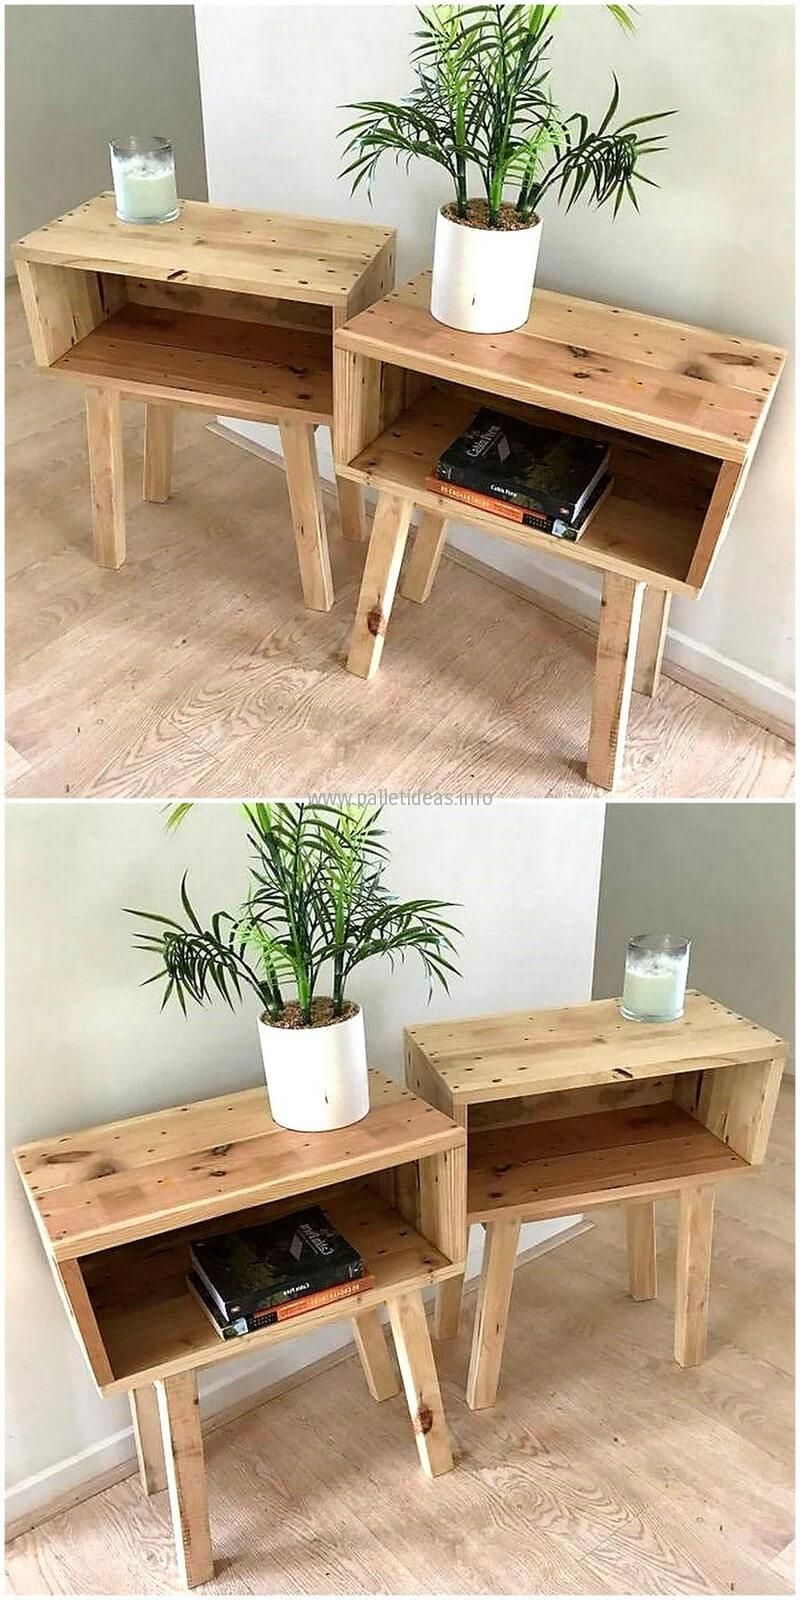 Some DIY Pallet Ideas with Nice Creativity